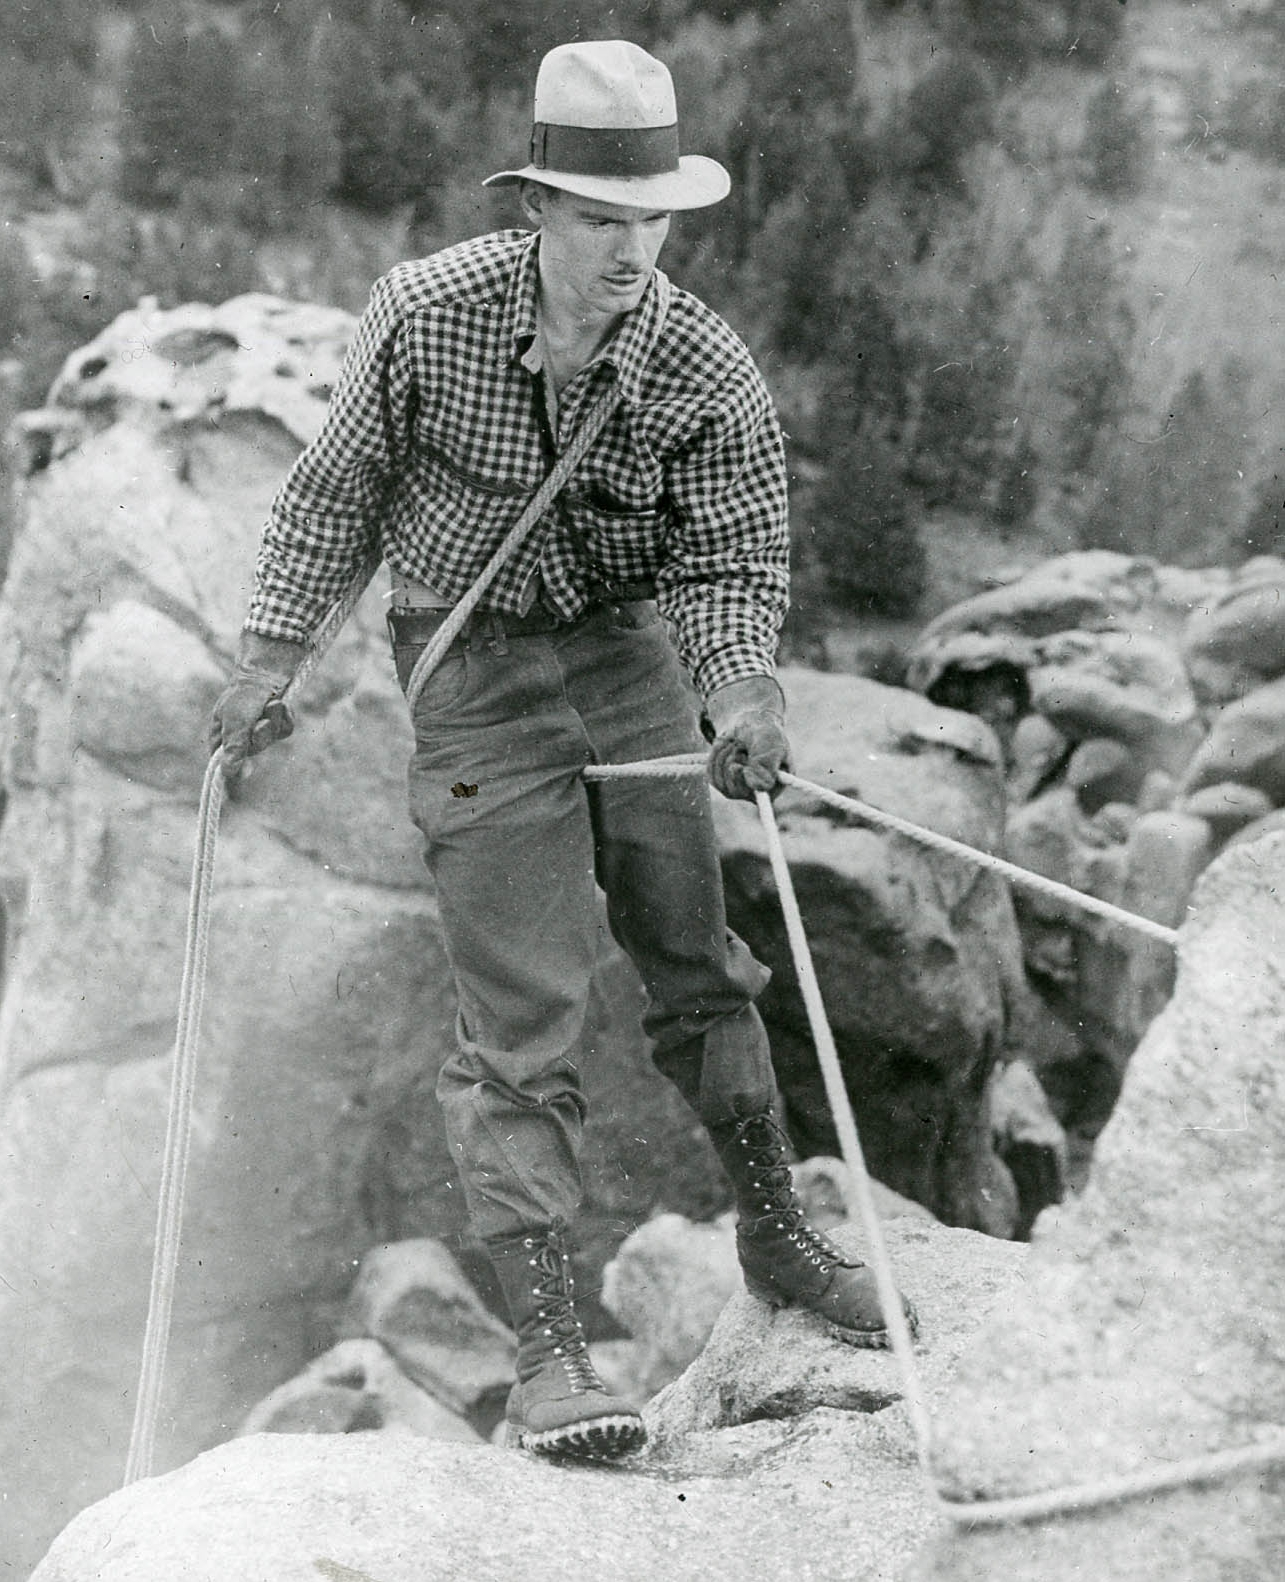 A generation ago, every climber learned to rappel. Early rappel techniques, like the Dulfersitz, helped climbers learn the relationship between the body and rope friction. These techniques still work, but they don't provide many options for backups or added security.